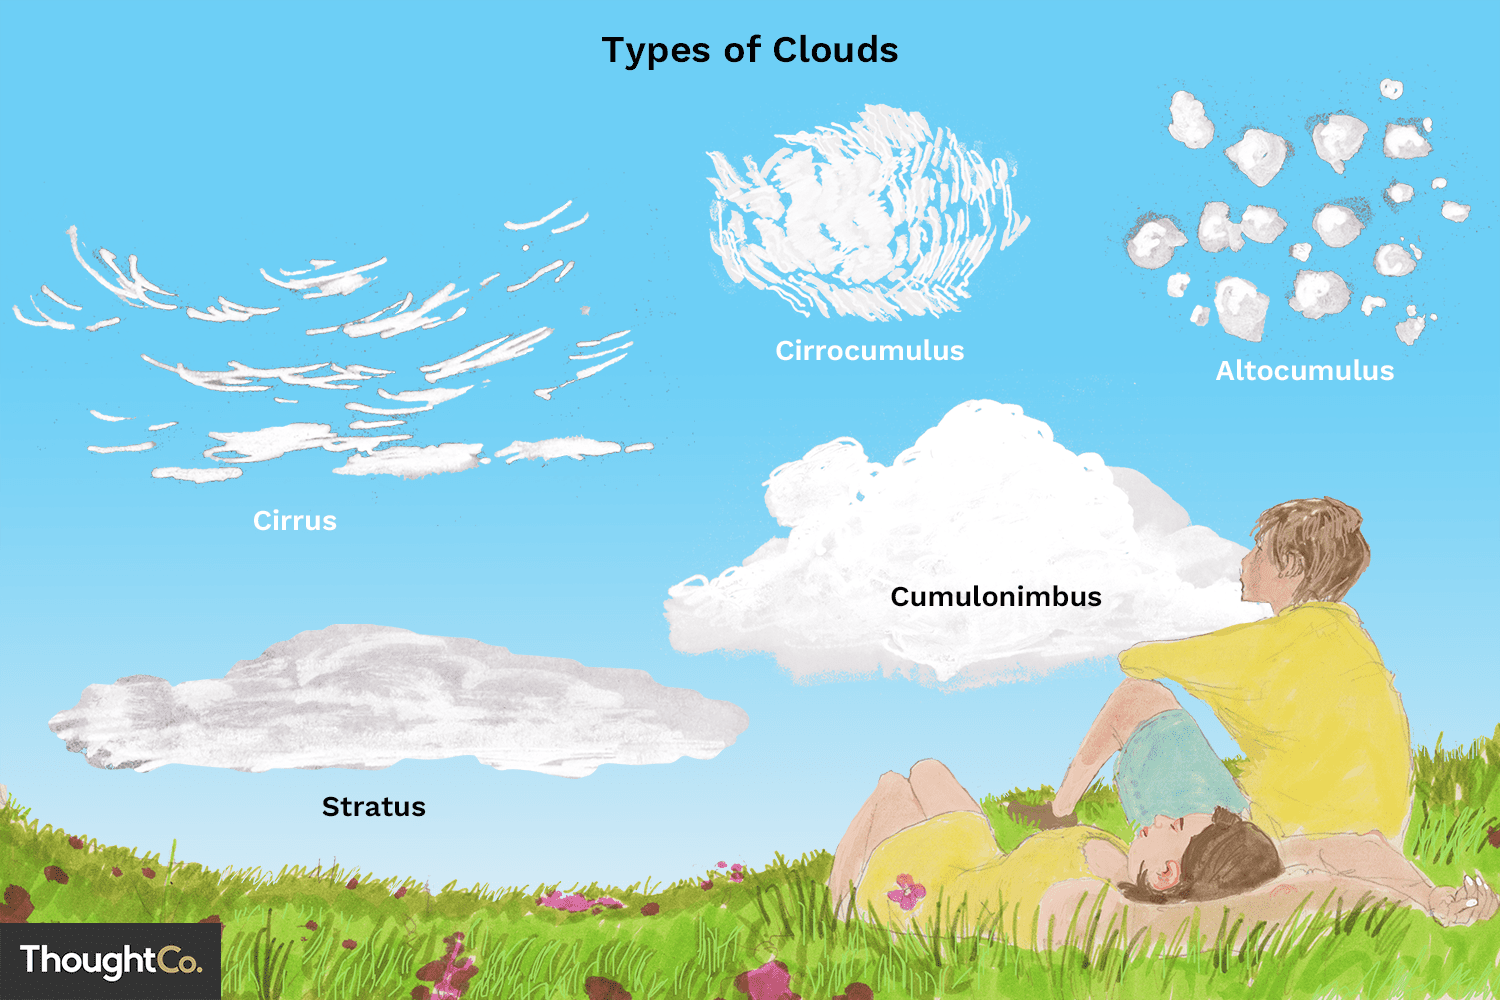 Worksheet About Clouds